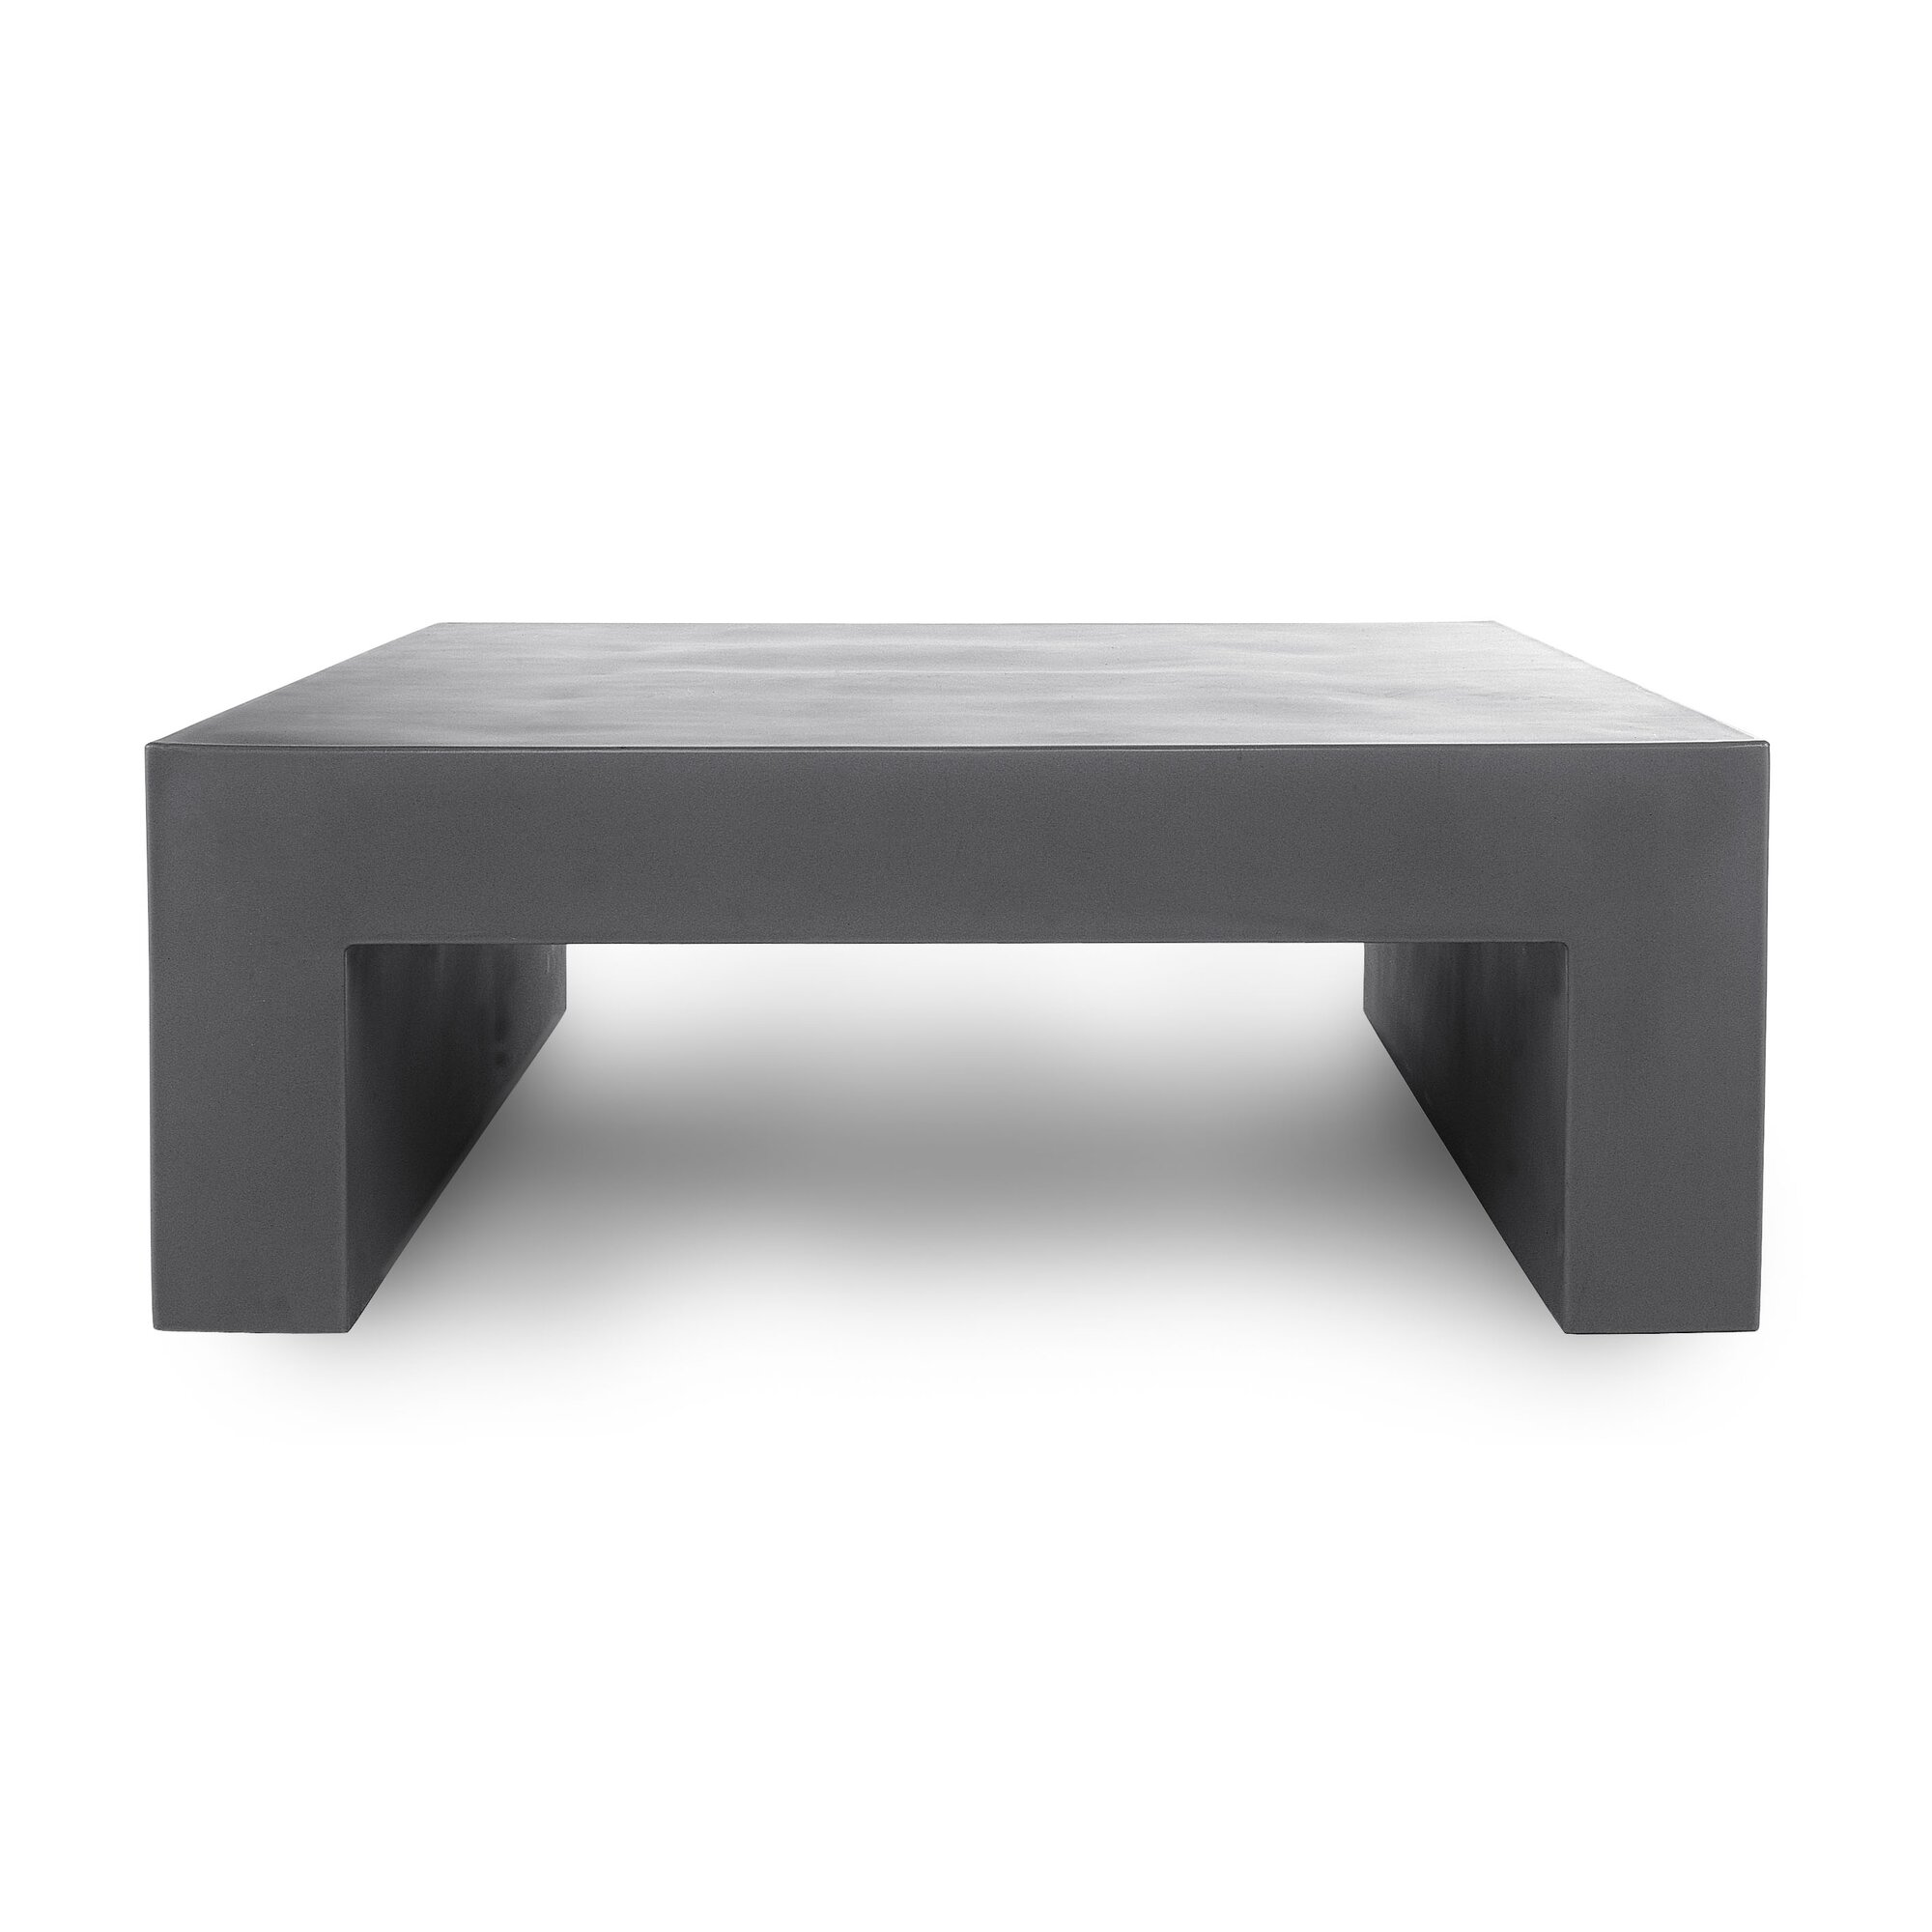 Heller Massimo Vignelli Coffee Table & Reviews